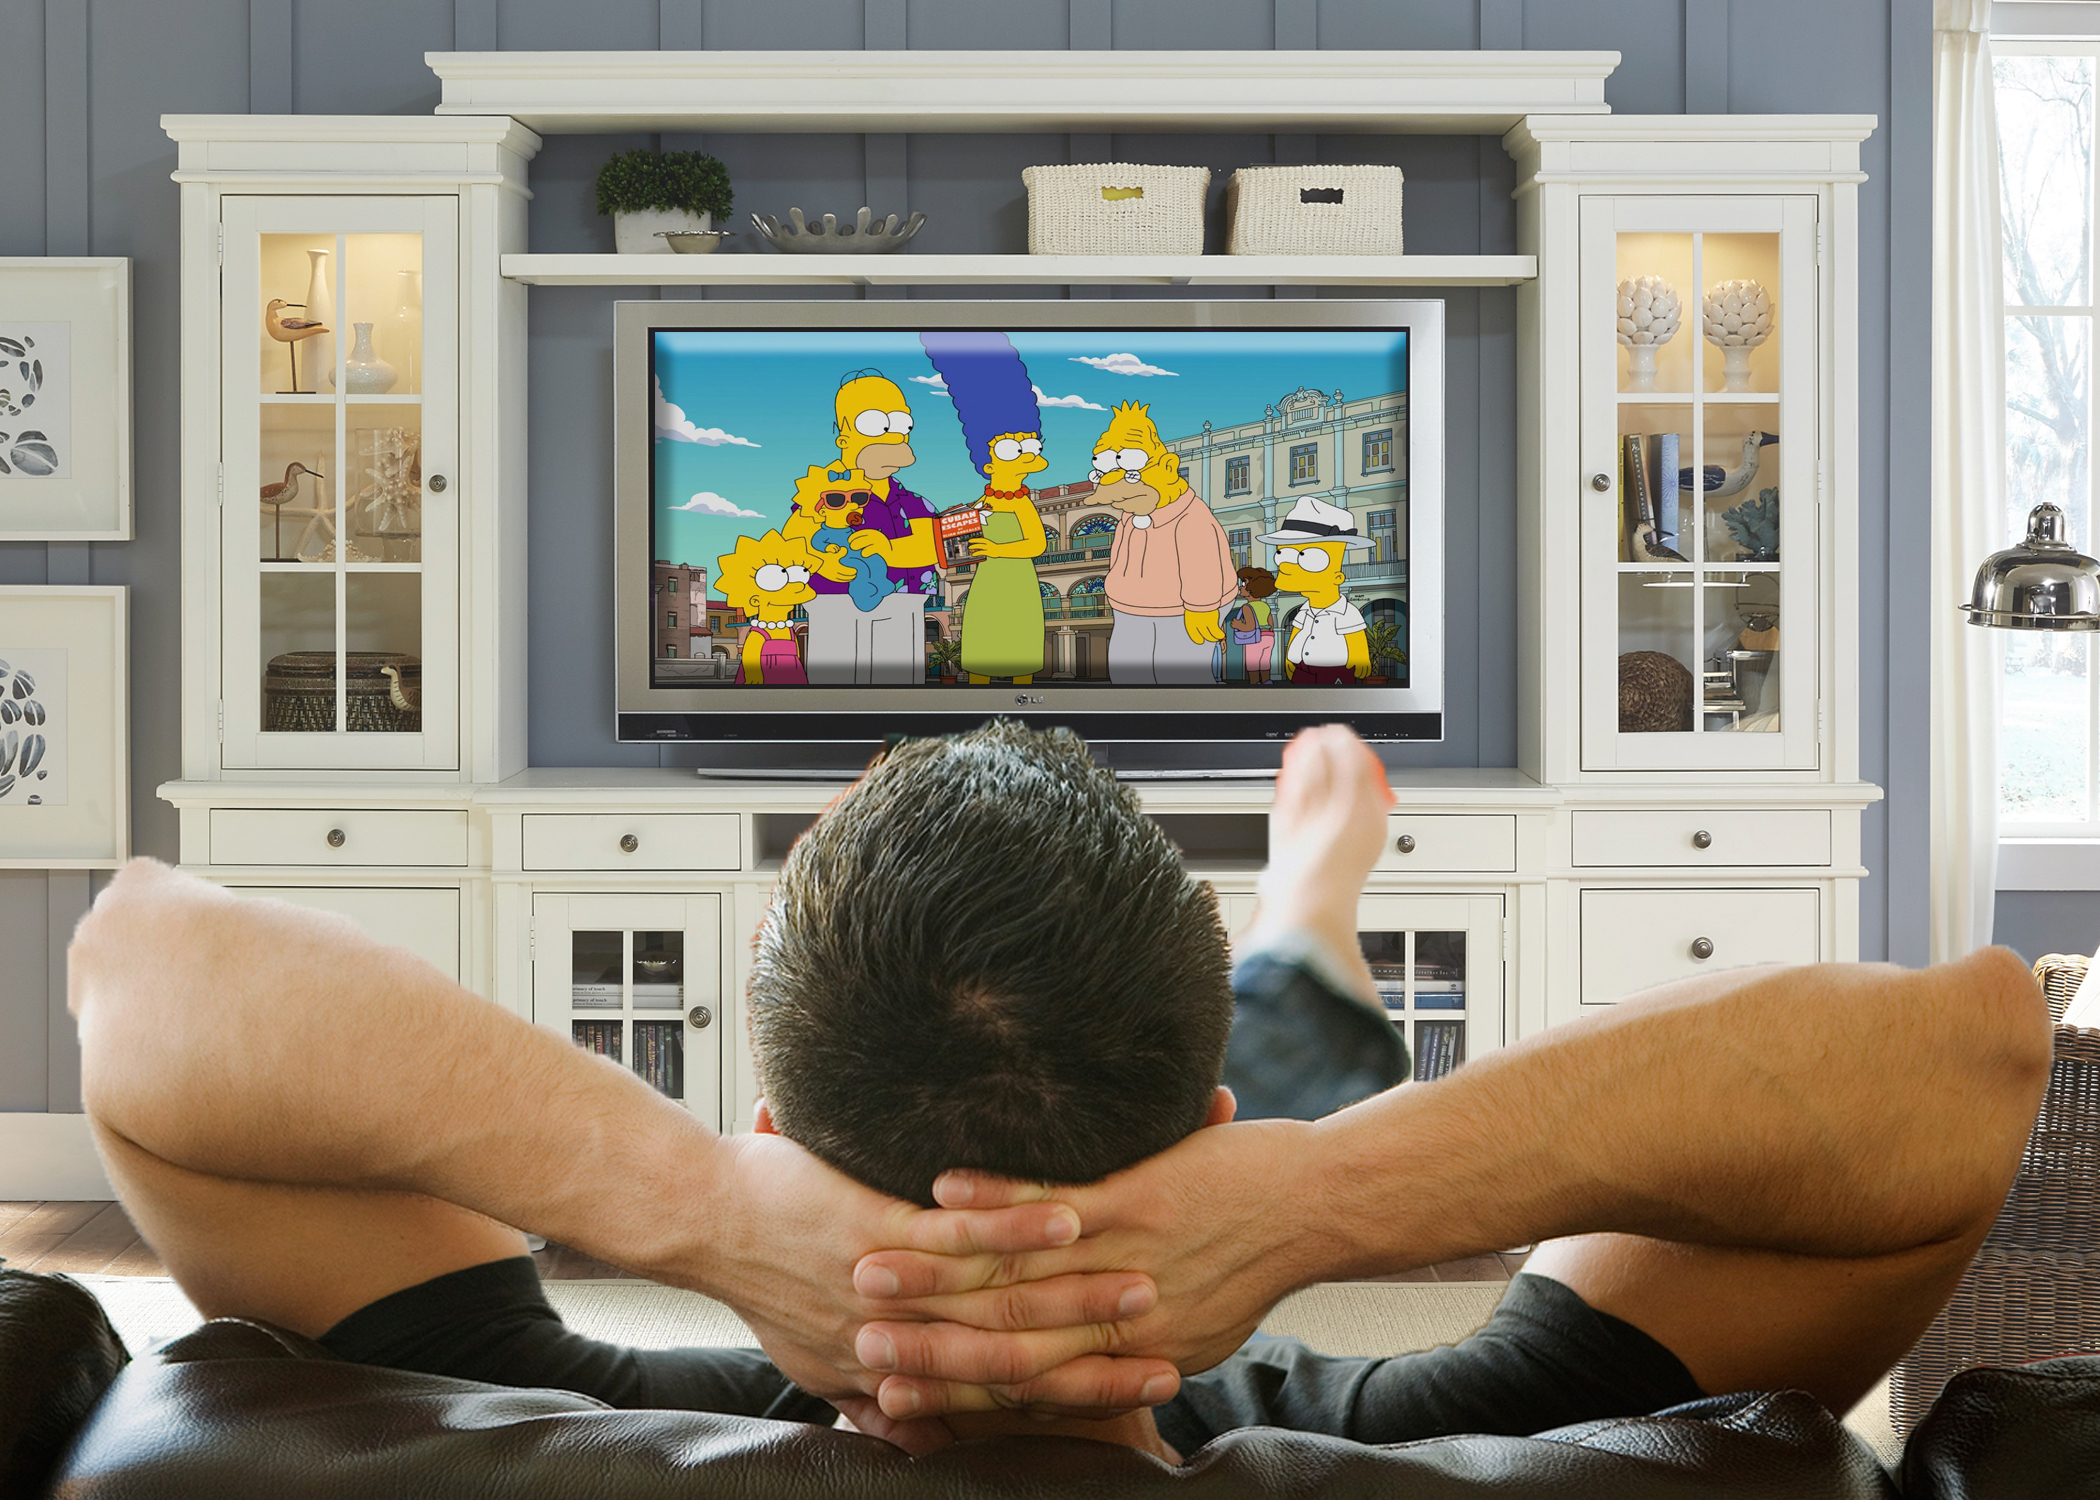 Local Parents Still Don't Know 38-Year-Old Son Has Seen Tons Of Simpson's Episodes